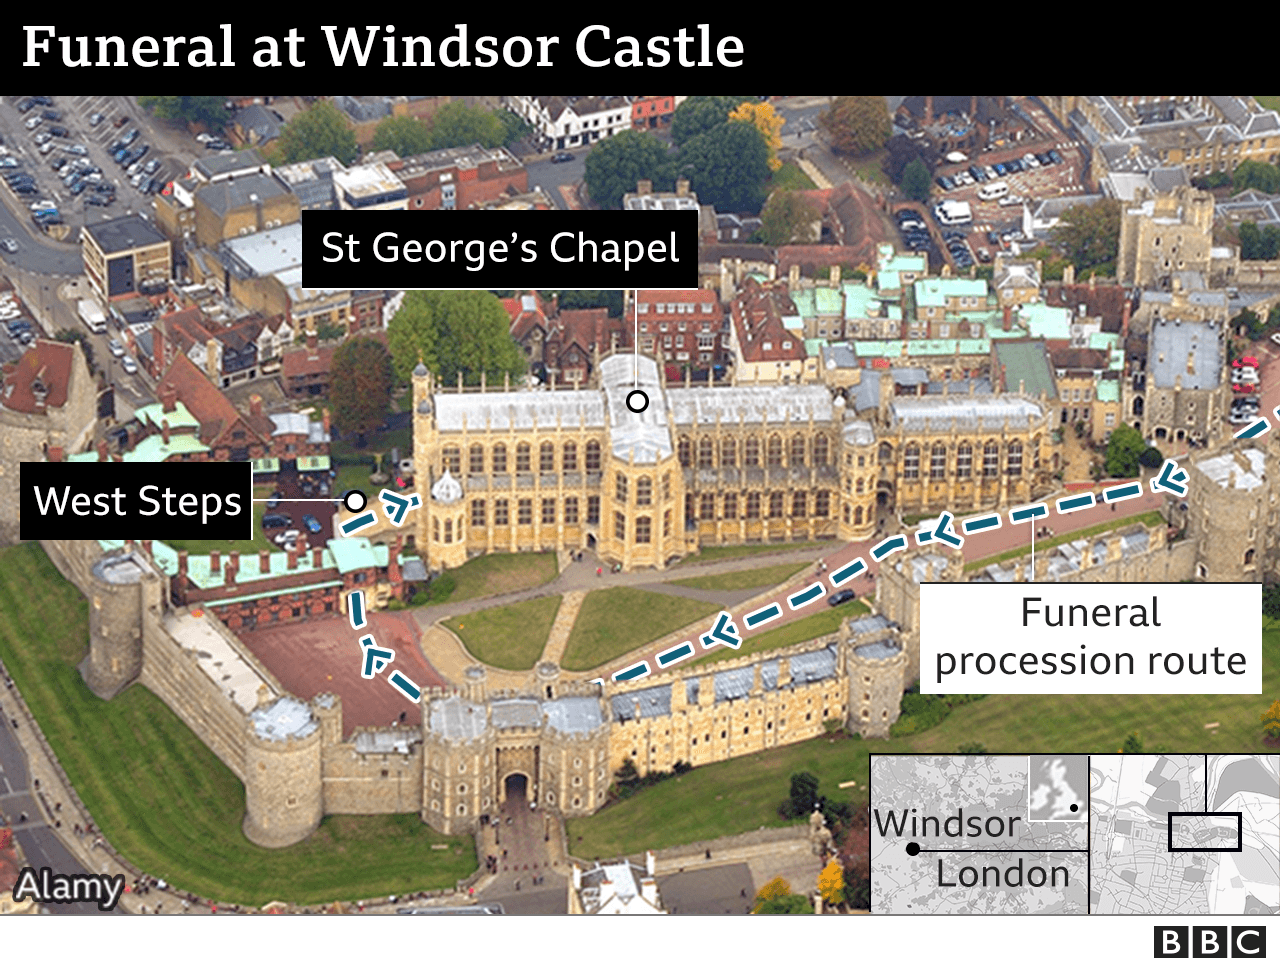 Aerial view of Windsor castle showing procession route